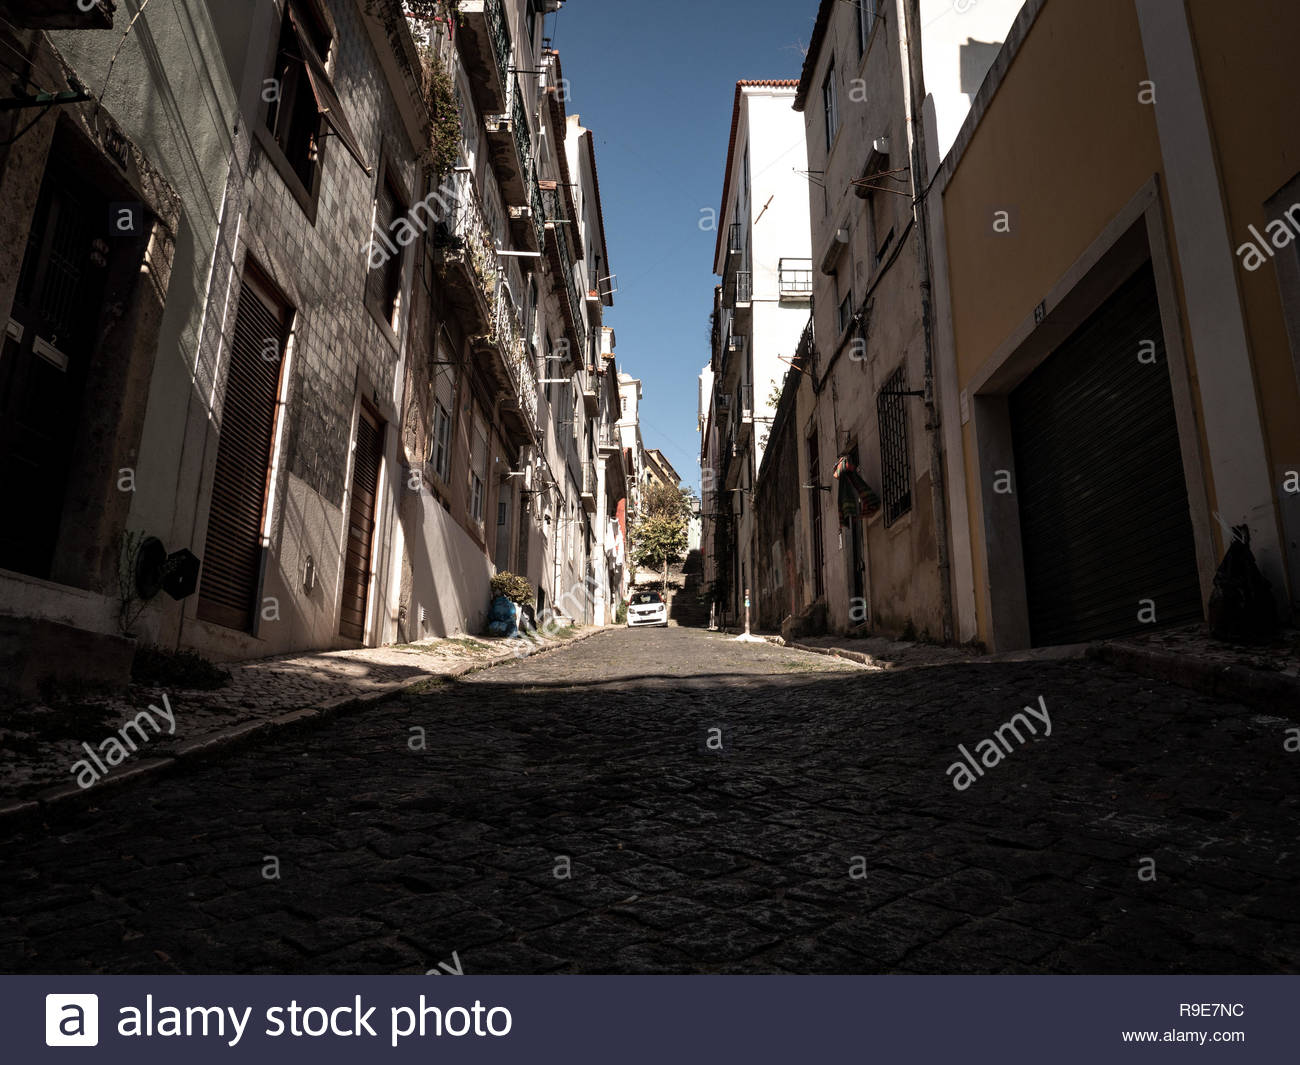 Stone street in historical downtown of Lisbon, Europe with buildings. There are no people in the alley. Great place for travel on holiday / vacation - Stock Image